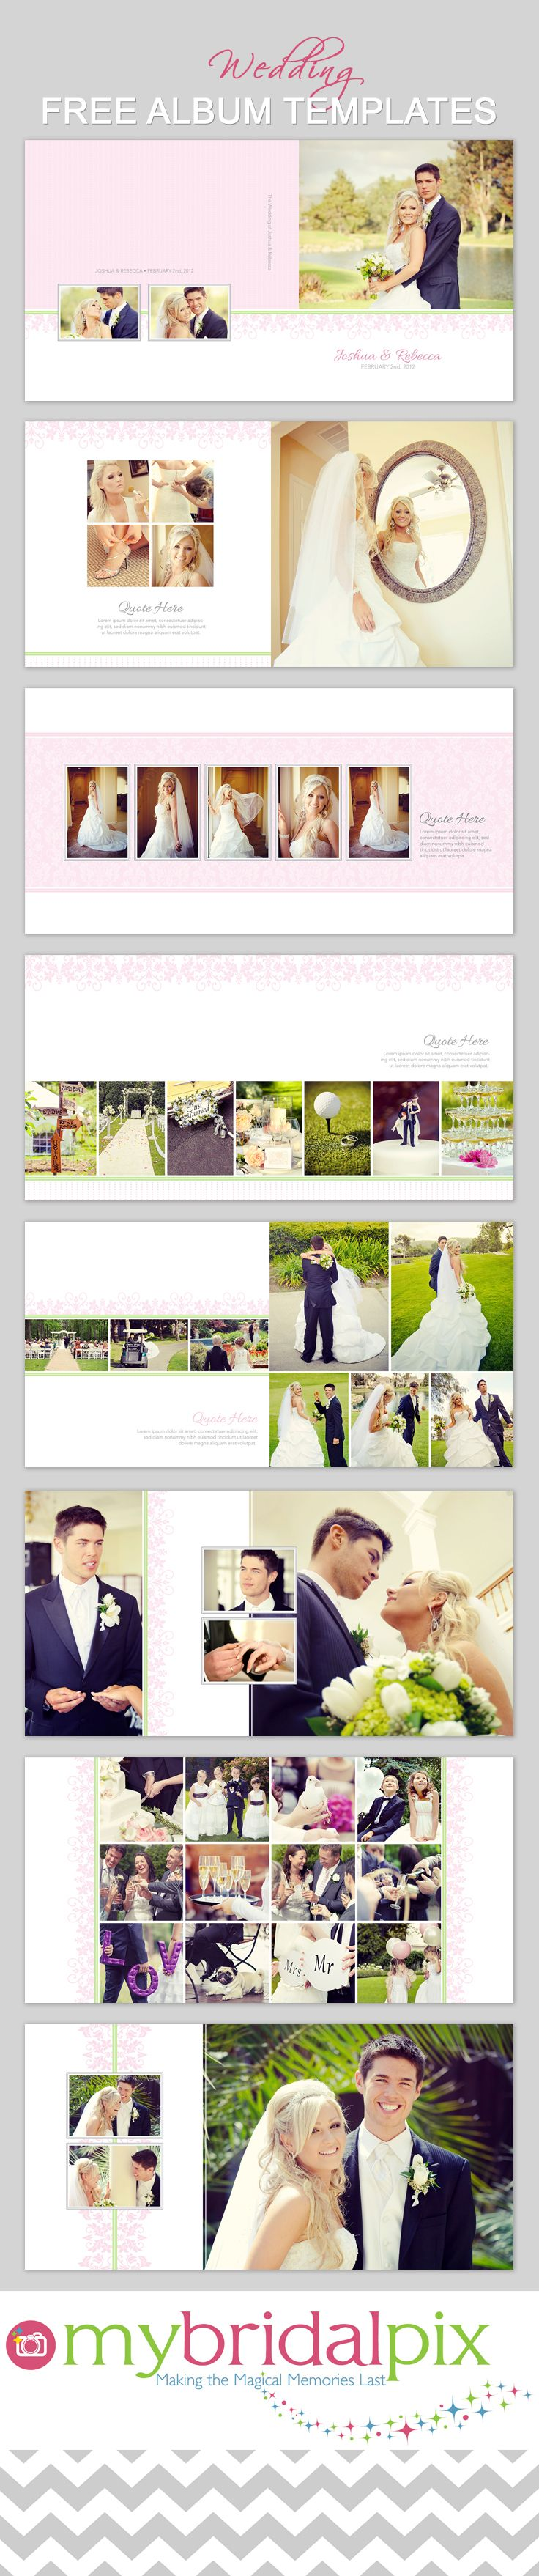 Find all your needs for a diy wedding album at mybridalpix find all your needs for a diy wedding album at mybridalpix why pay a pro when you can do it yourself and save hundreds of dollars in th solutioingenieria Image collections